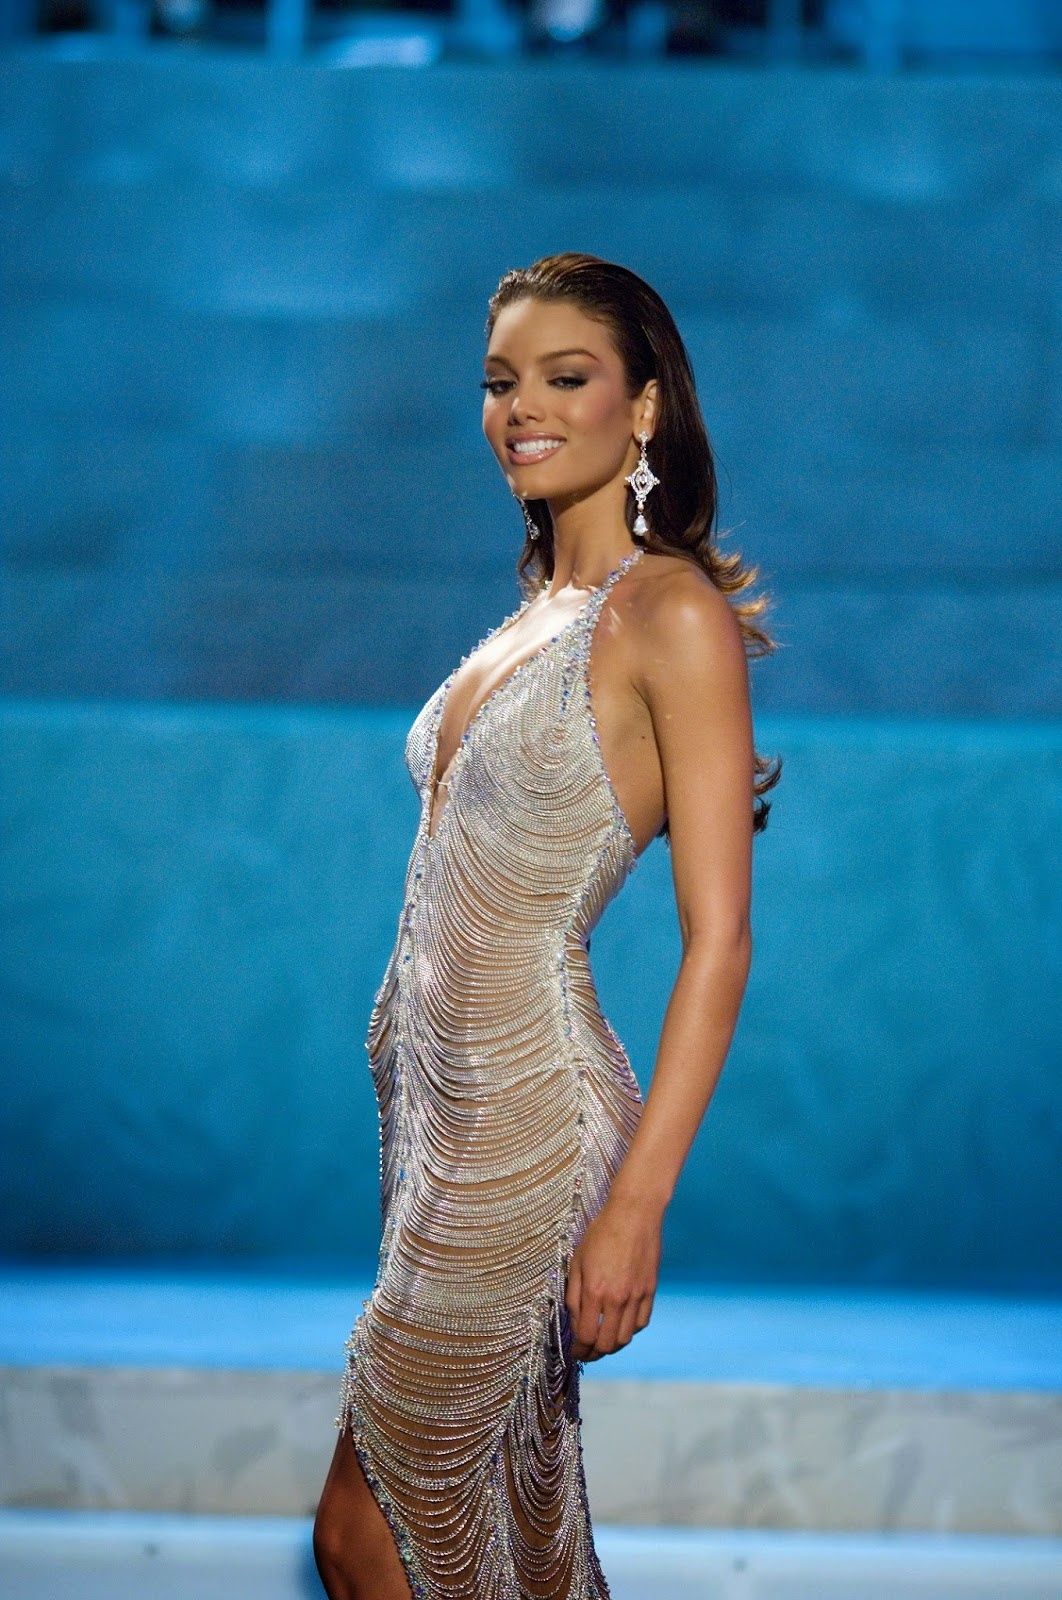 Zuleyka Rivera, Miss Universe 2006 - Unbeatable - Miss World Winners